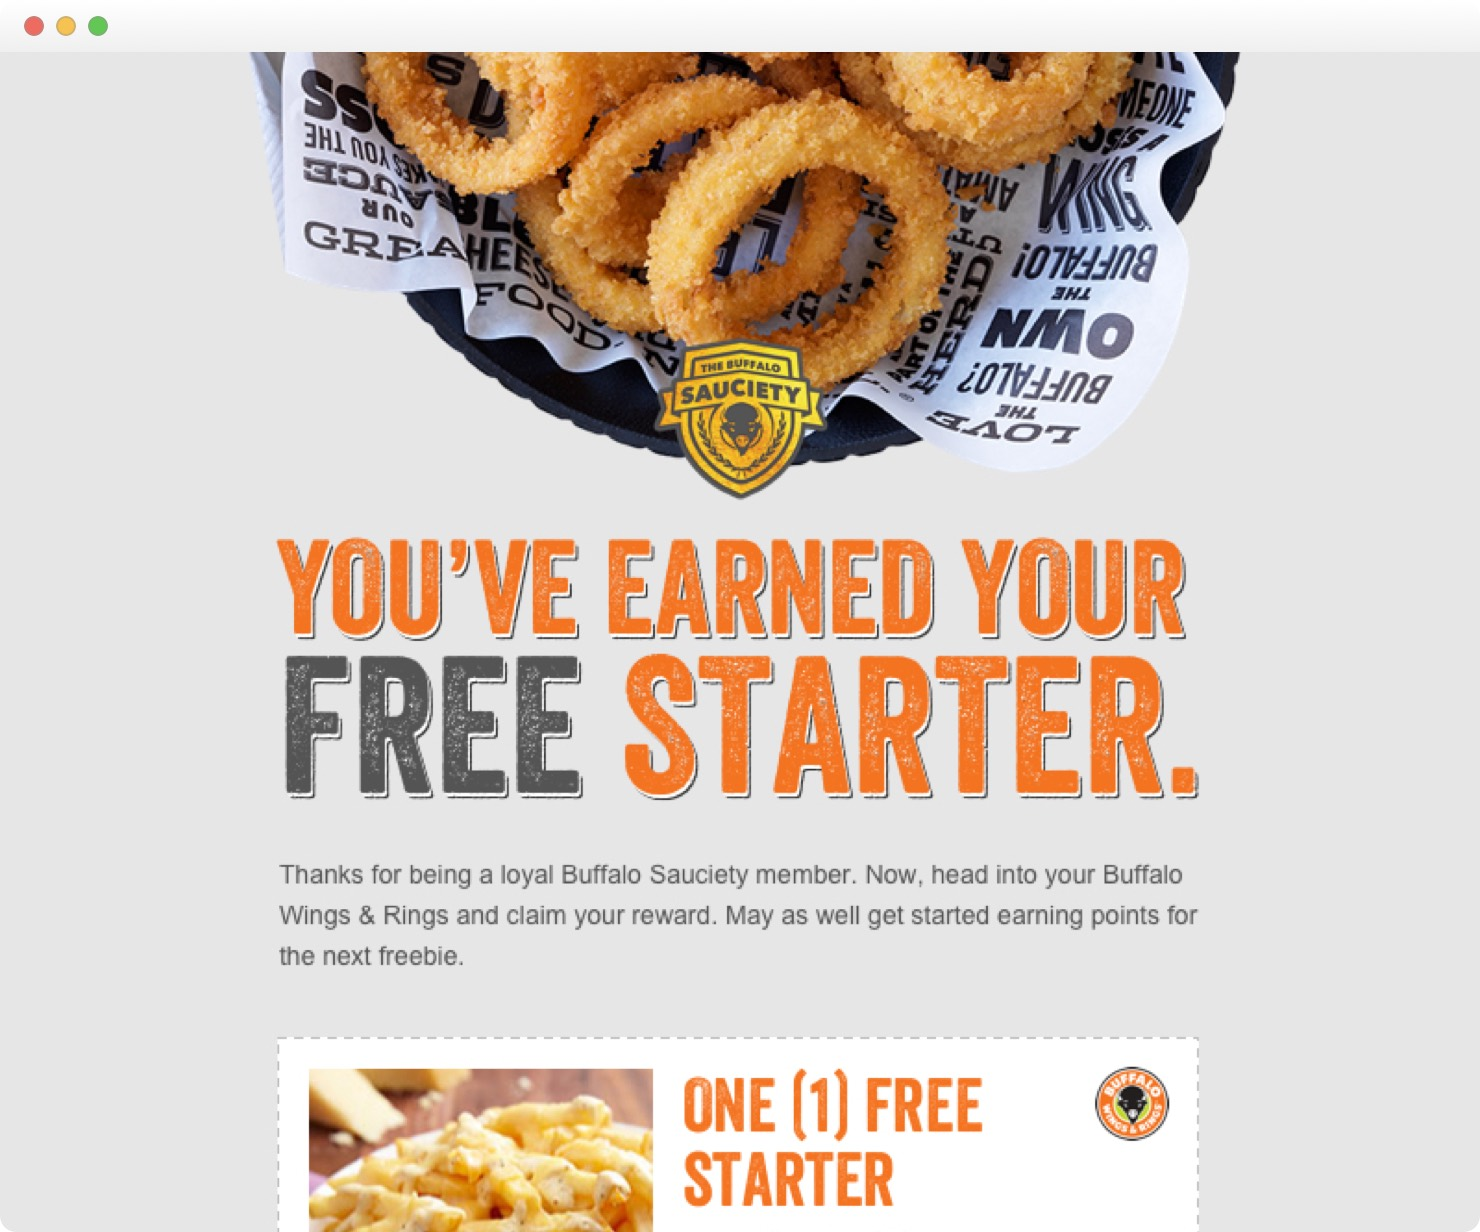 Buffalo Wings & Rings - Promos - Buffalo Sauciety email